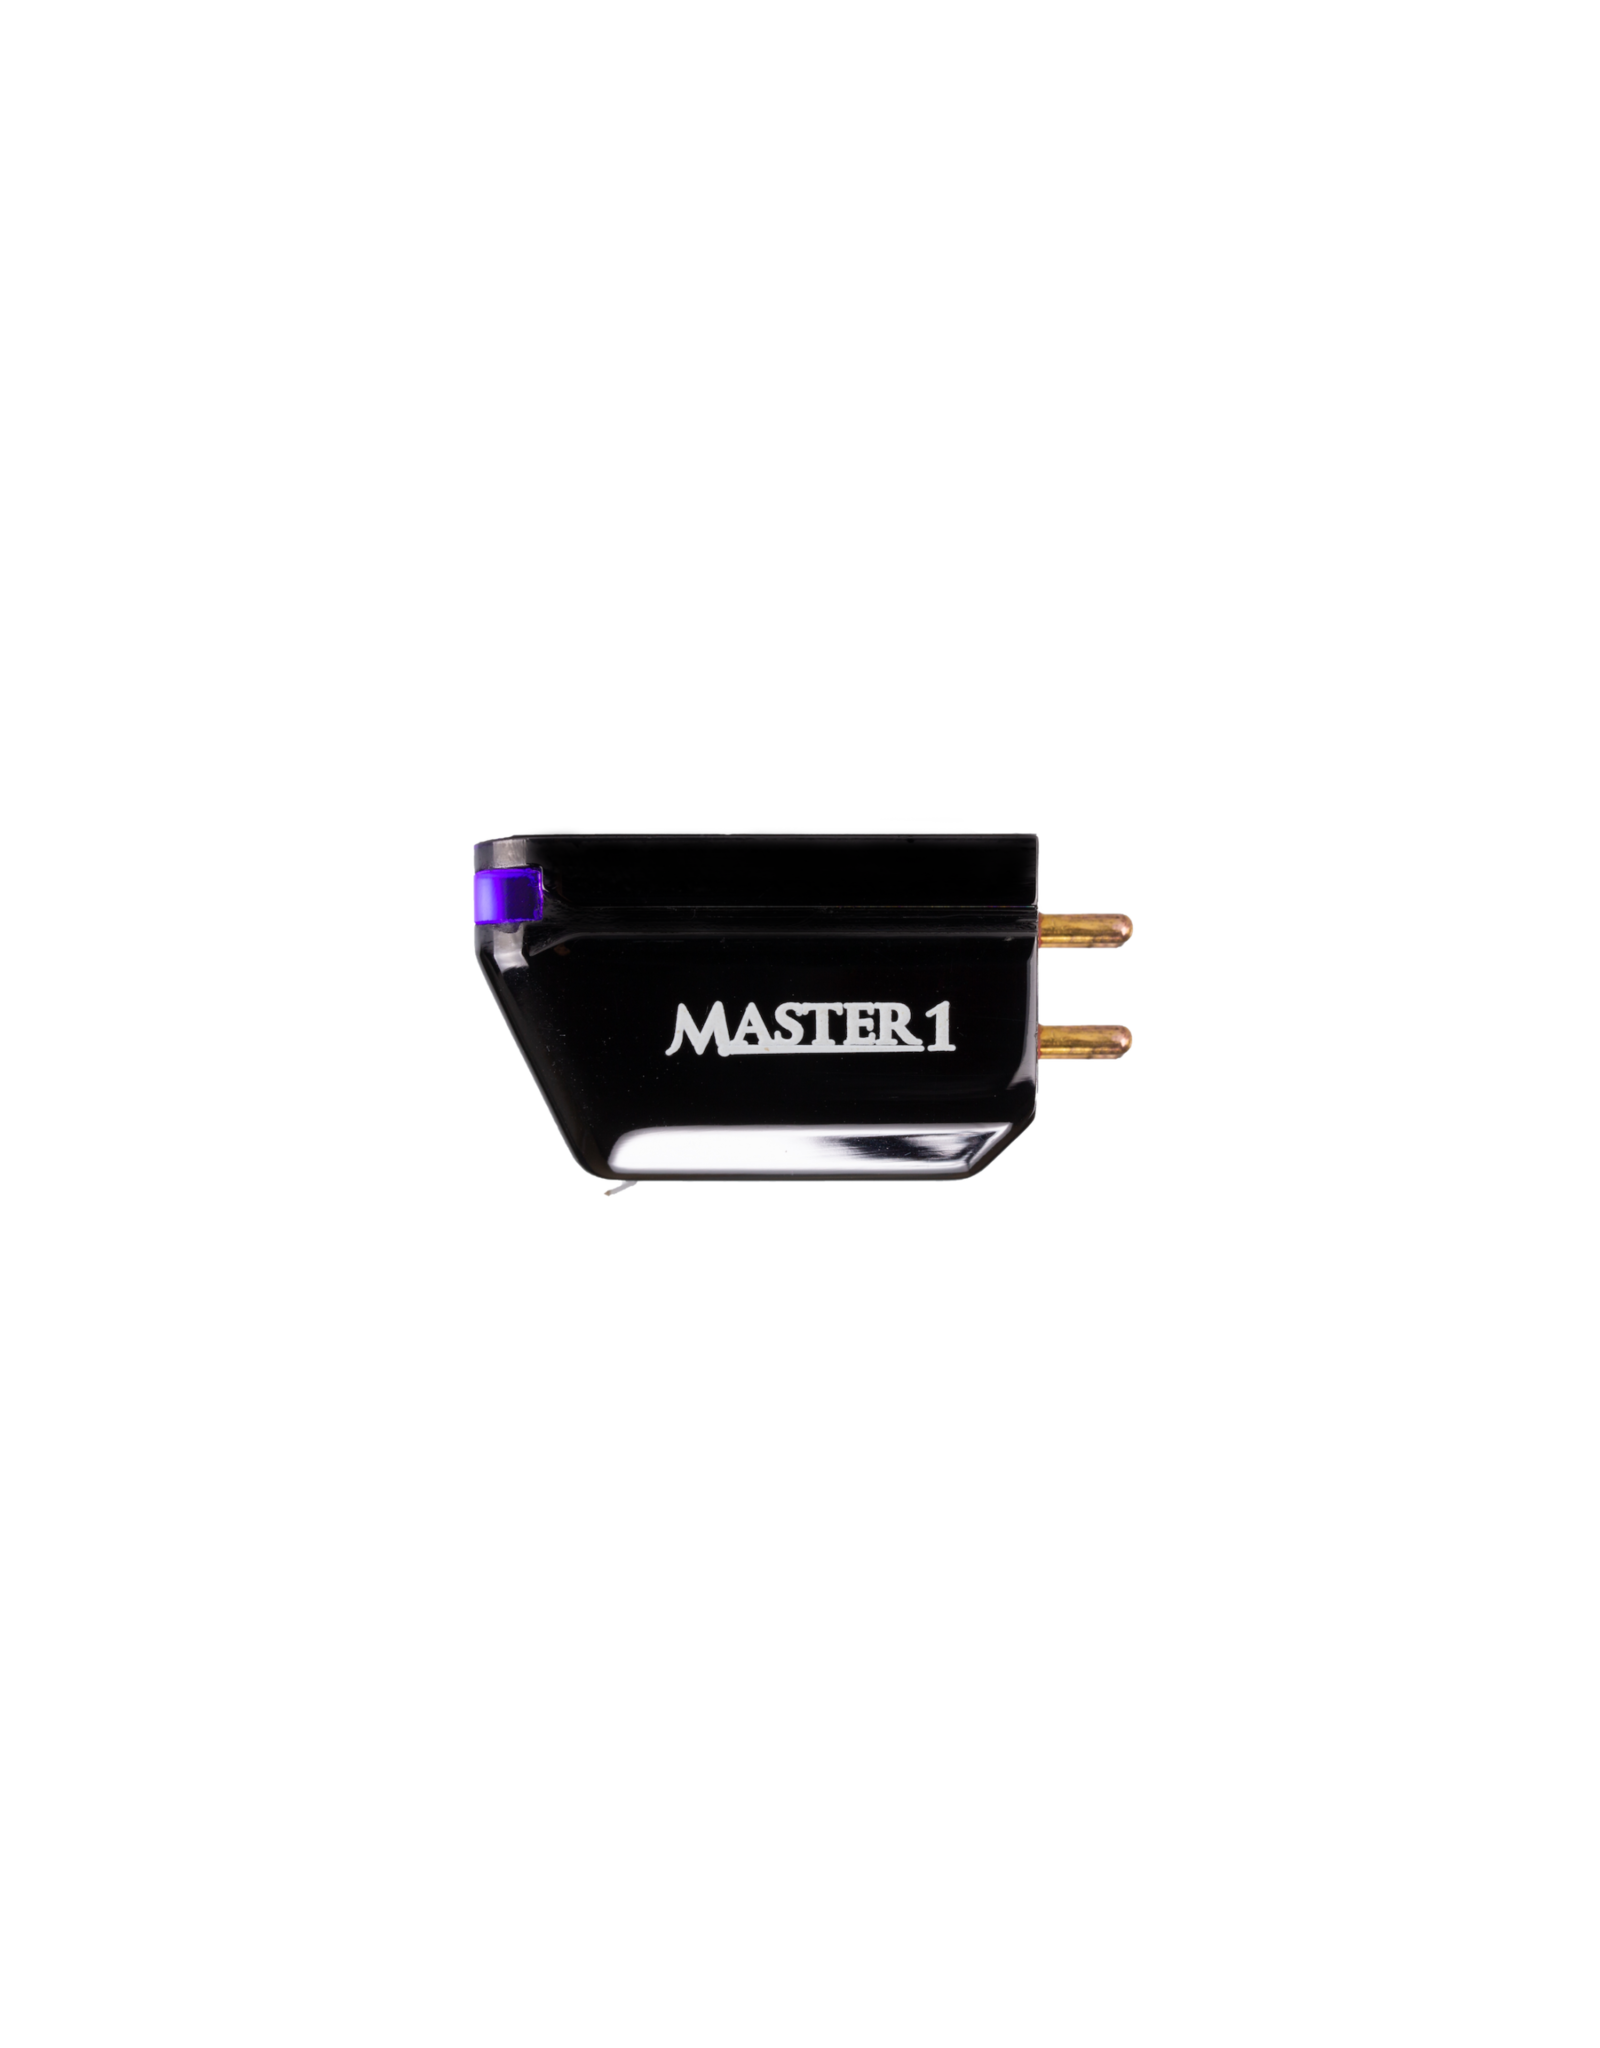 DS Audio DS Audio DS Master1 Moving Coil Phono Cartridge